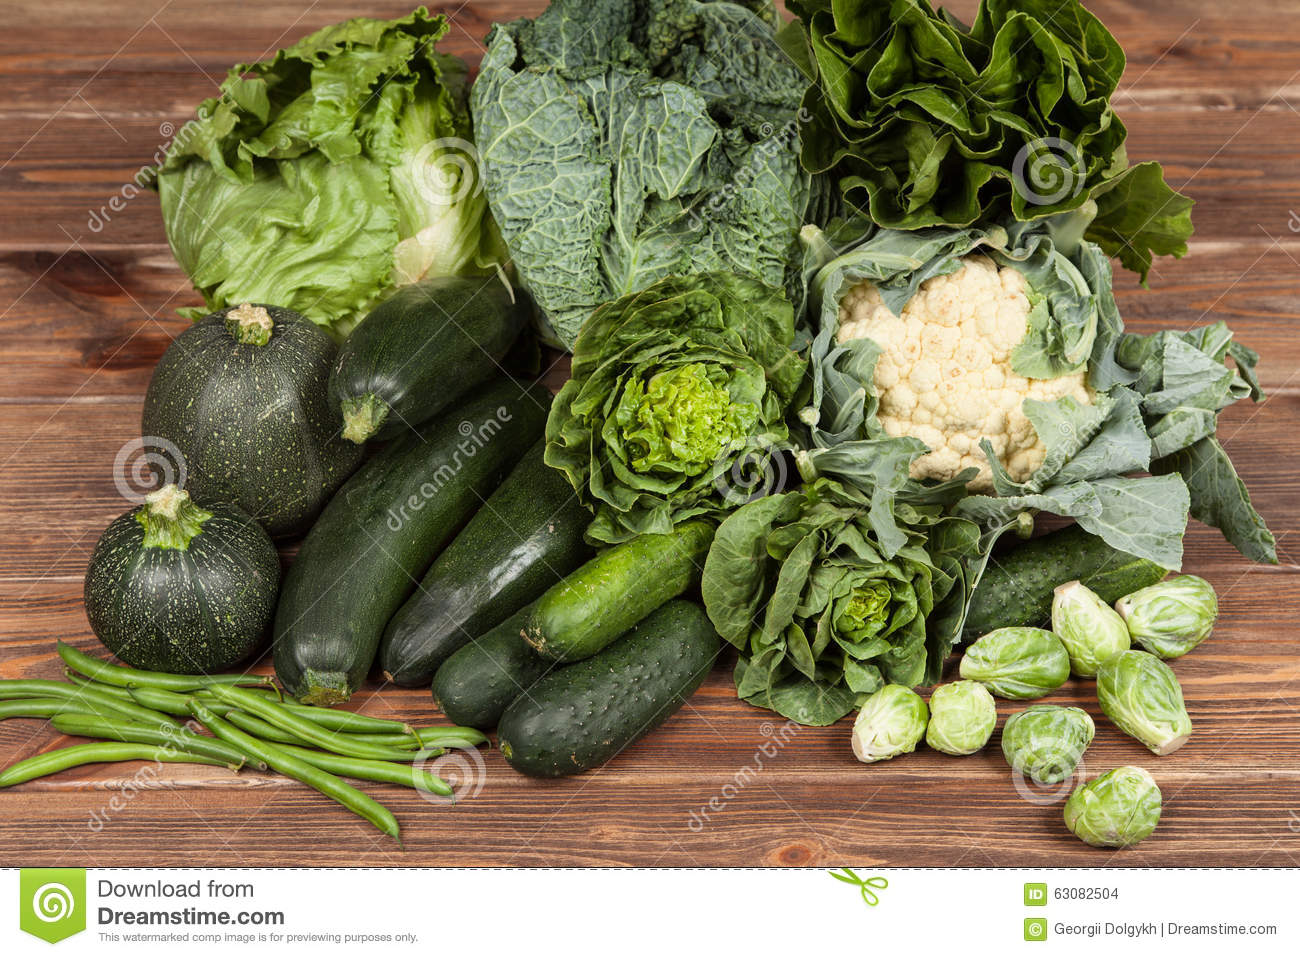 Download Assortiment Des Légumes Verts Photo stock - Image du vert, normal: 63082504